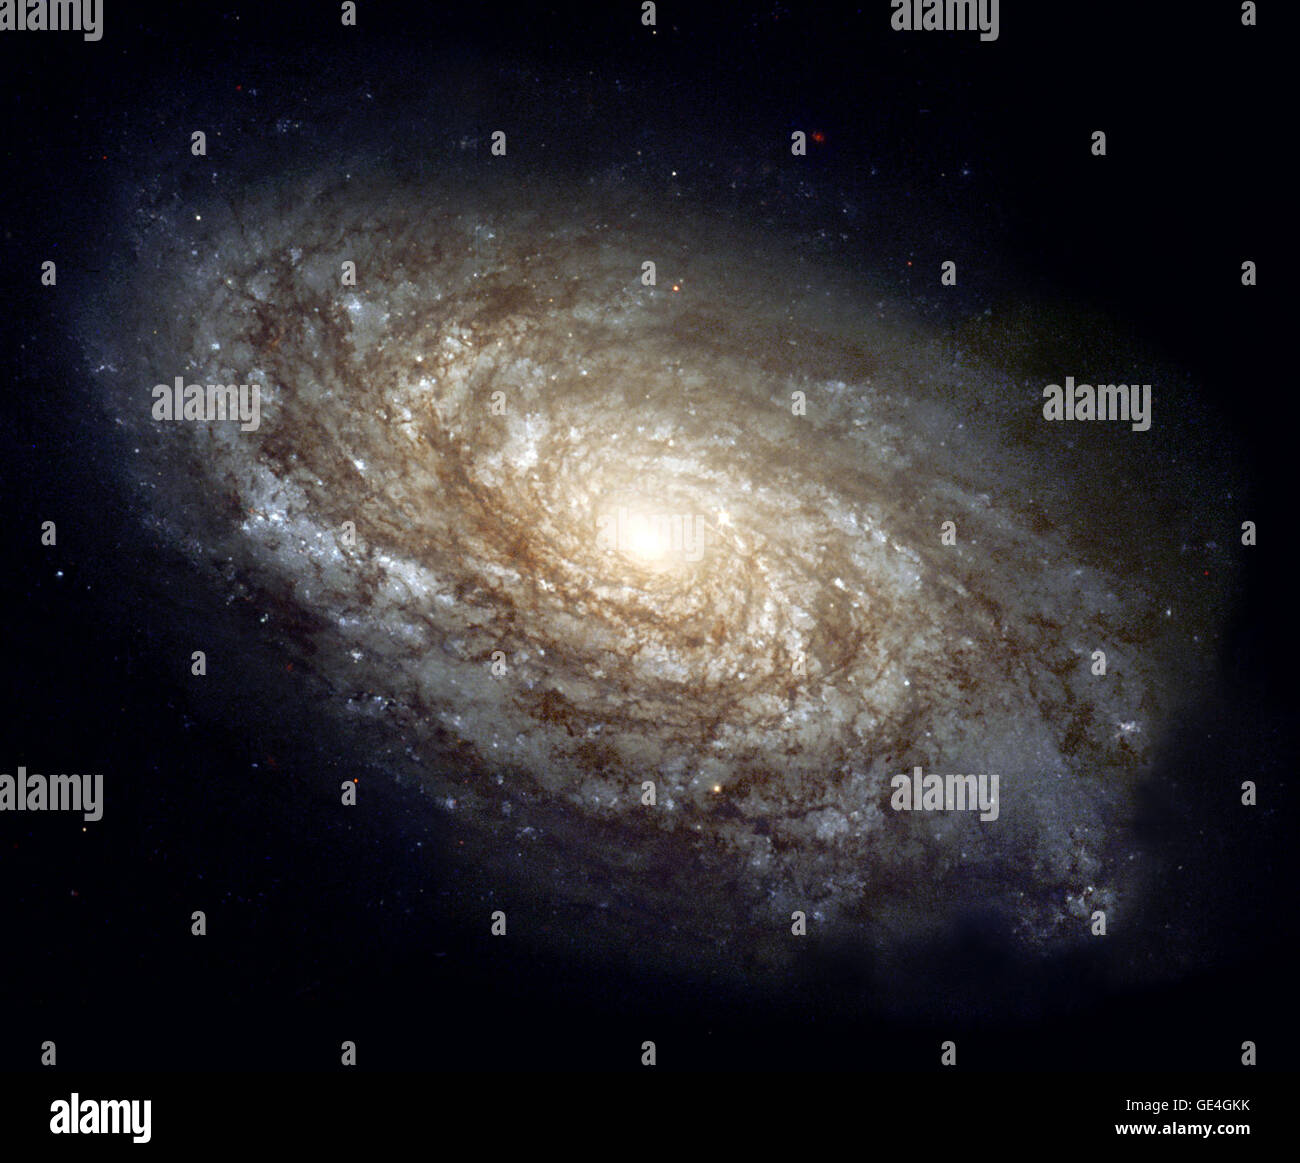 (June 3, 1999) In 1995, the majestic spiral galaxy NGC 4414 was imaged by the Hubble Space Telescope as part of Stock Photo